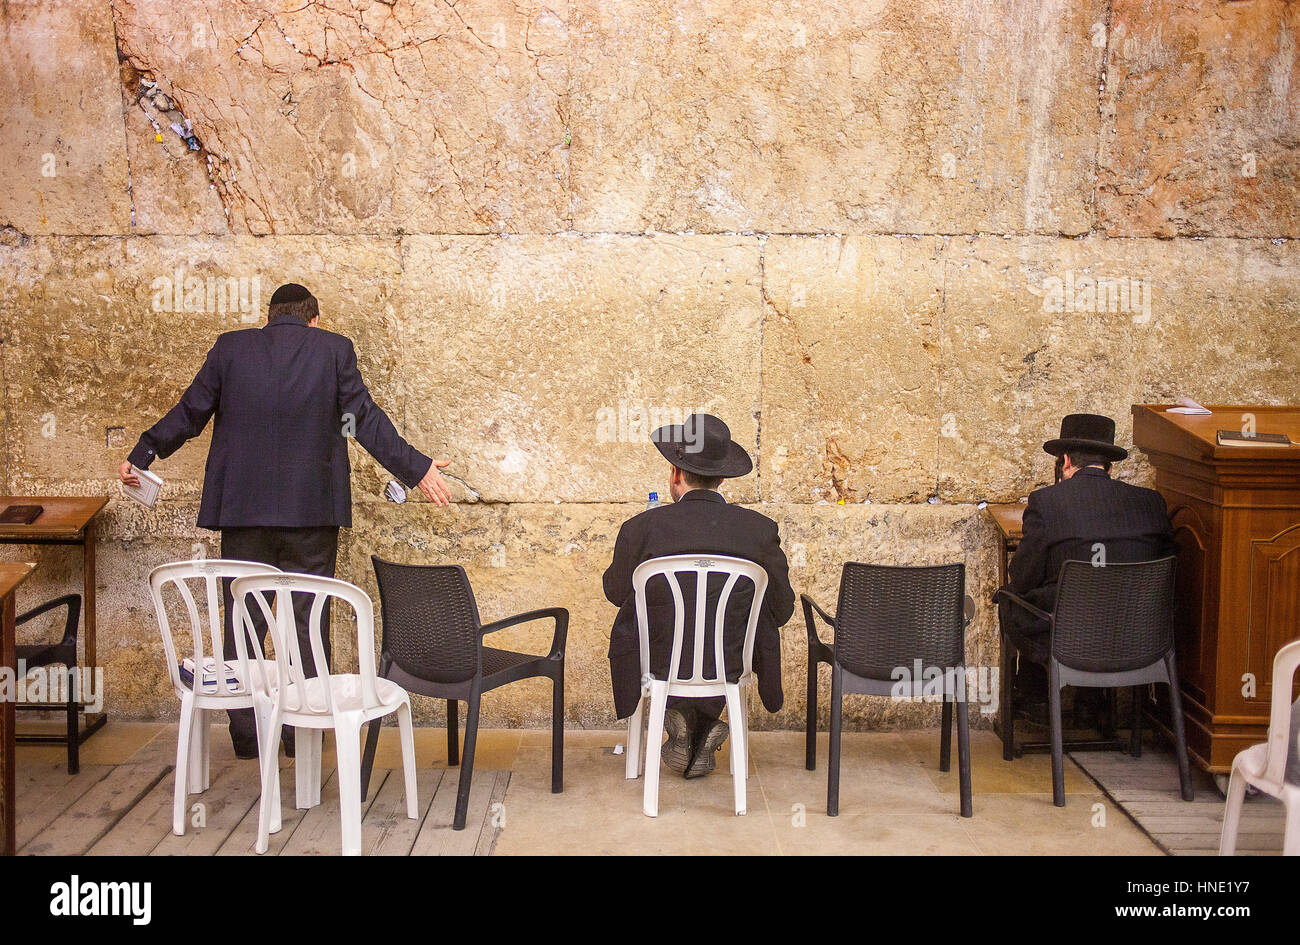 Wailing Wall, men's prayer area, praying at the Western Wall,in Wilson's arch, Jewish Quarter, Old City, - Stock Image